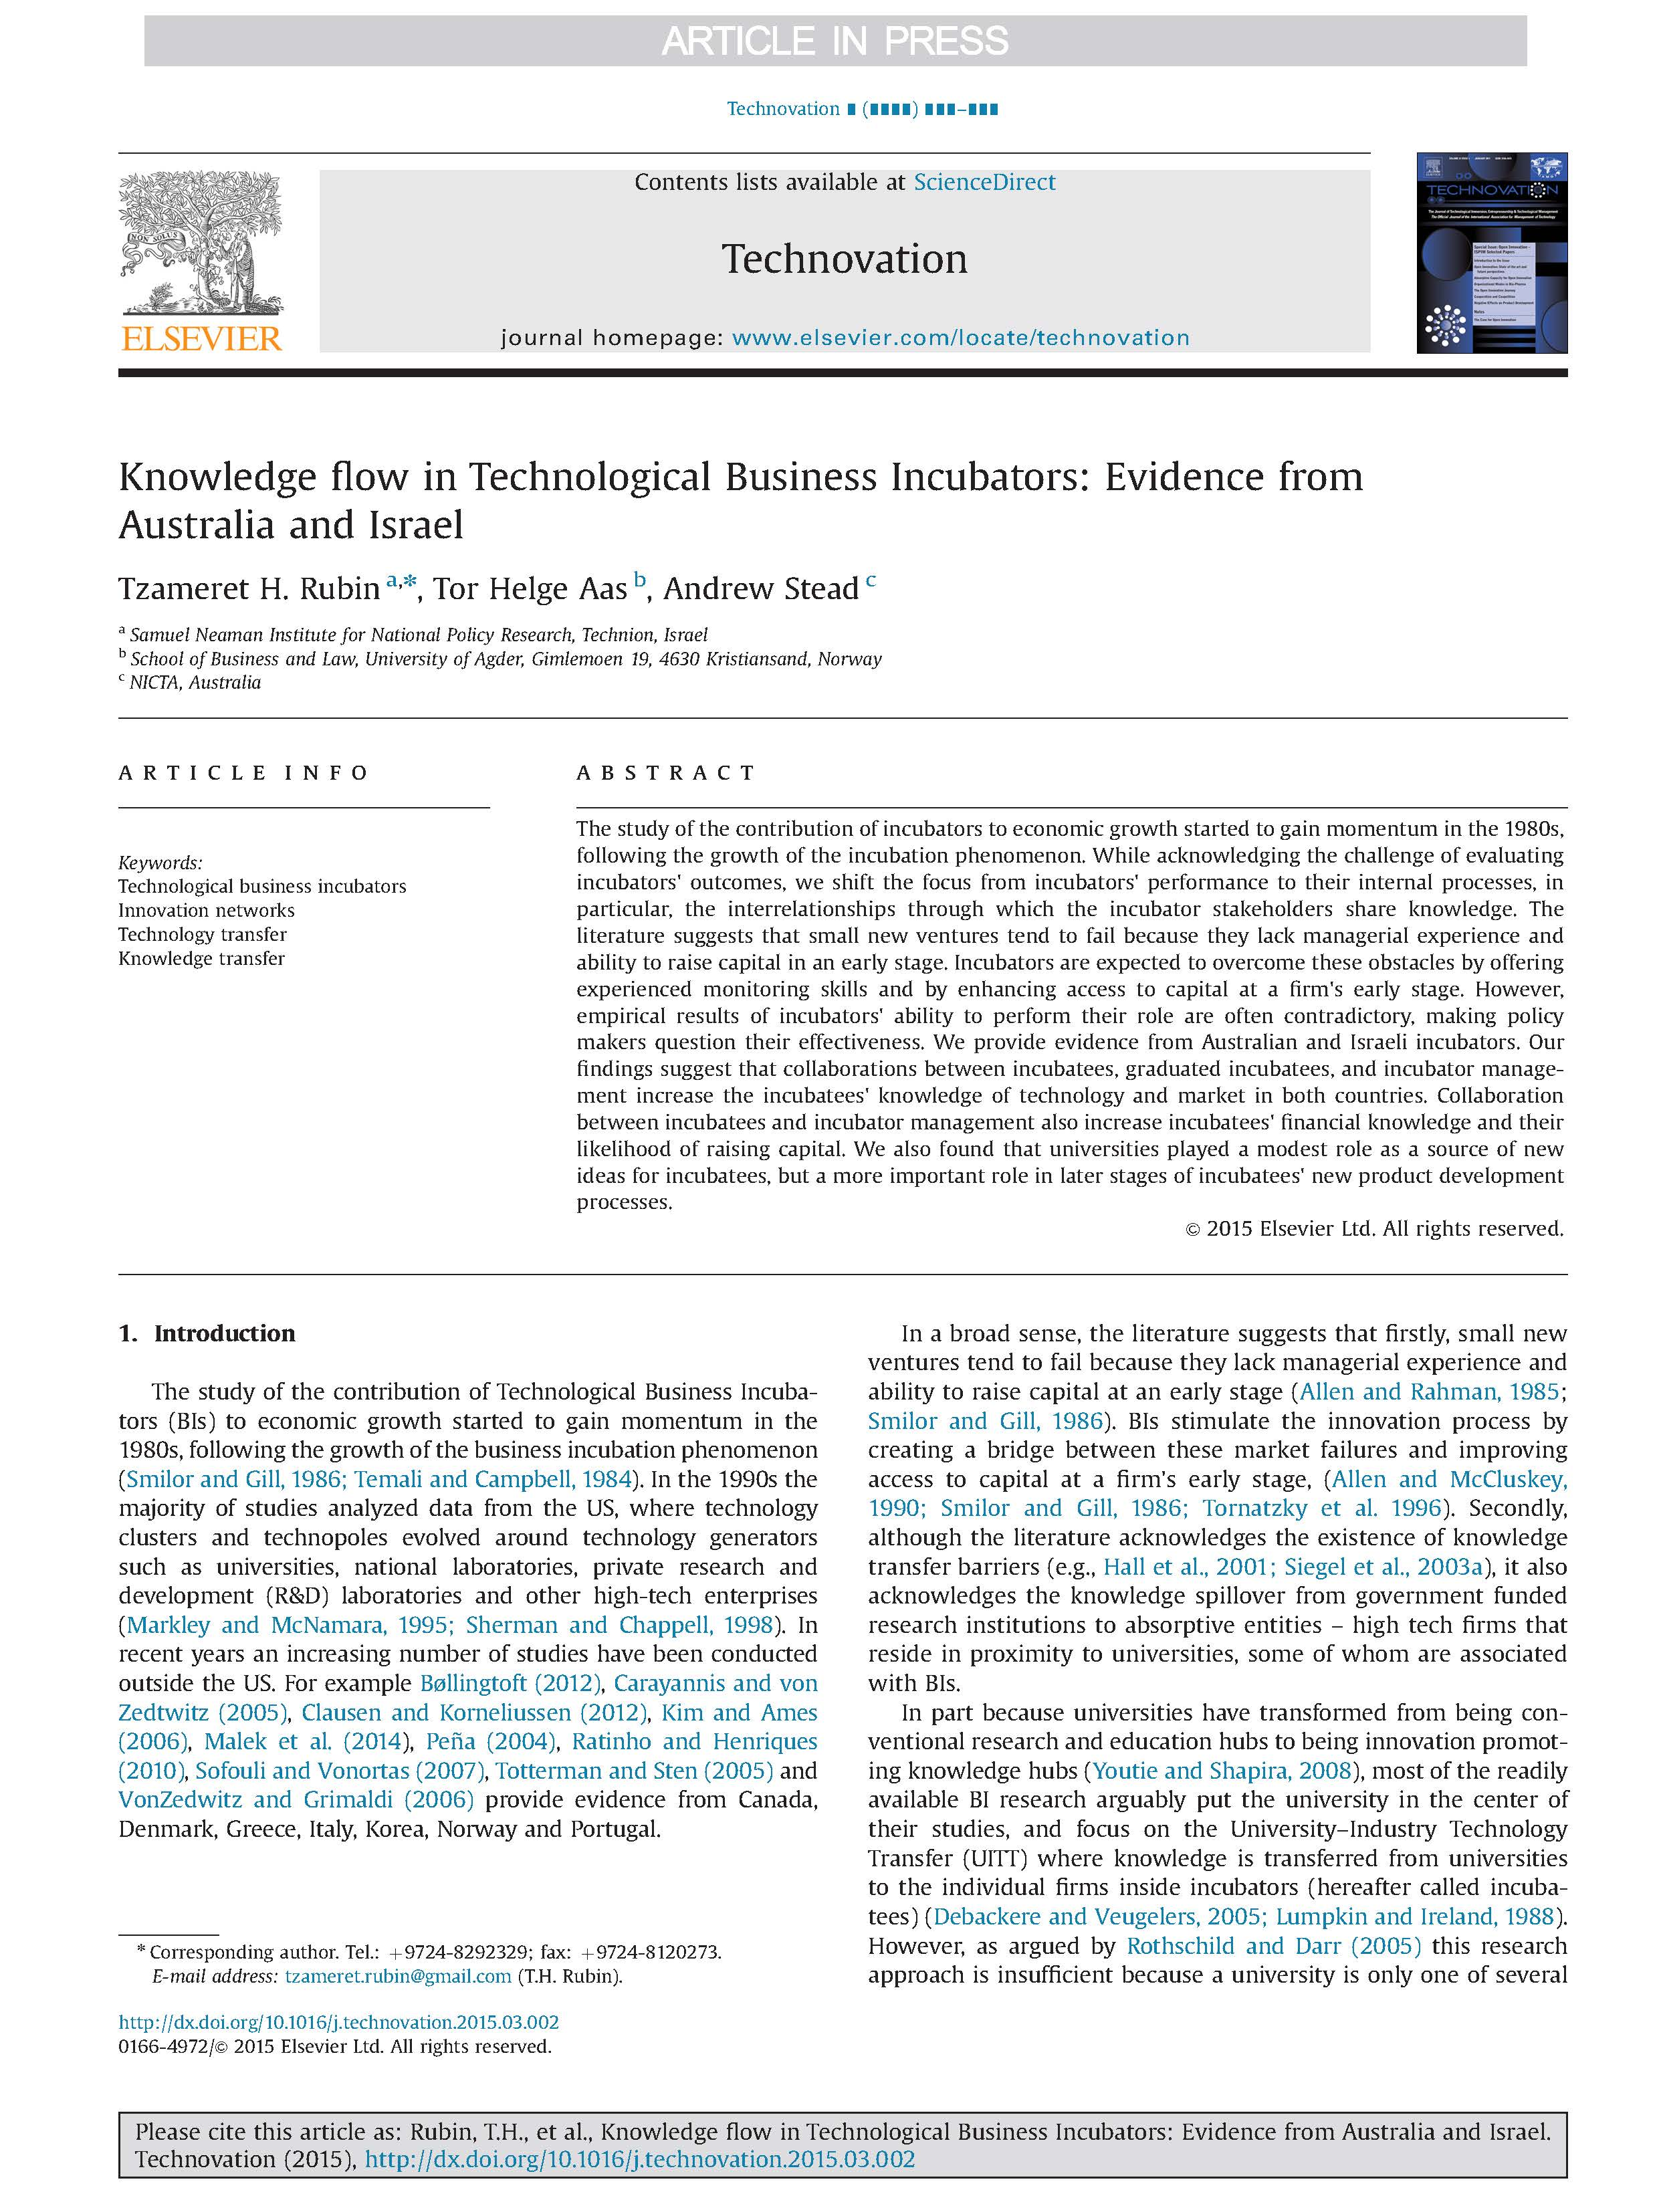 Knowledge flow in Technological Business Incubators: Evidence from Australia and Israel